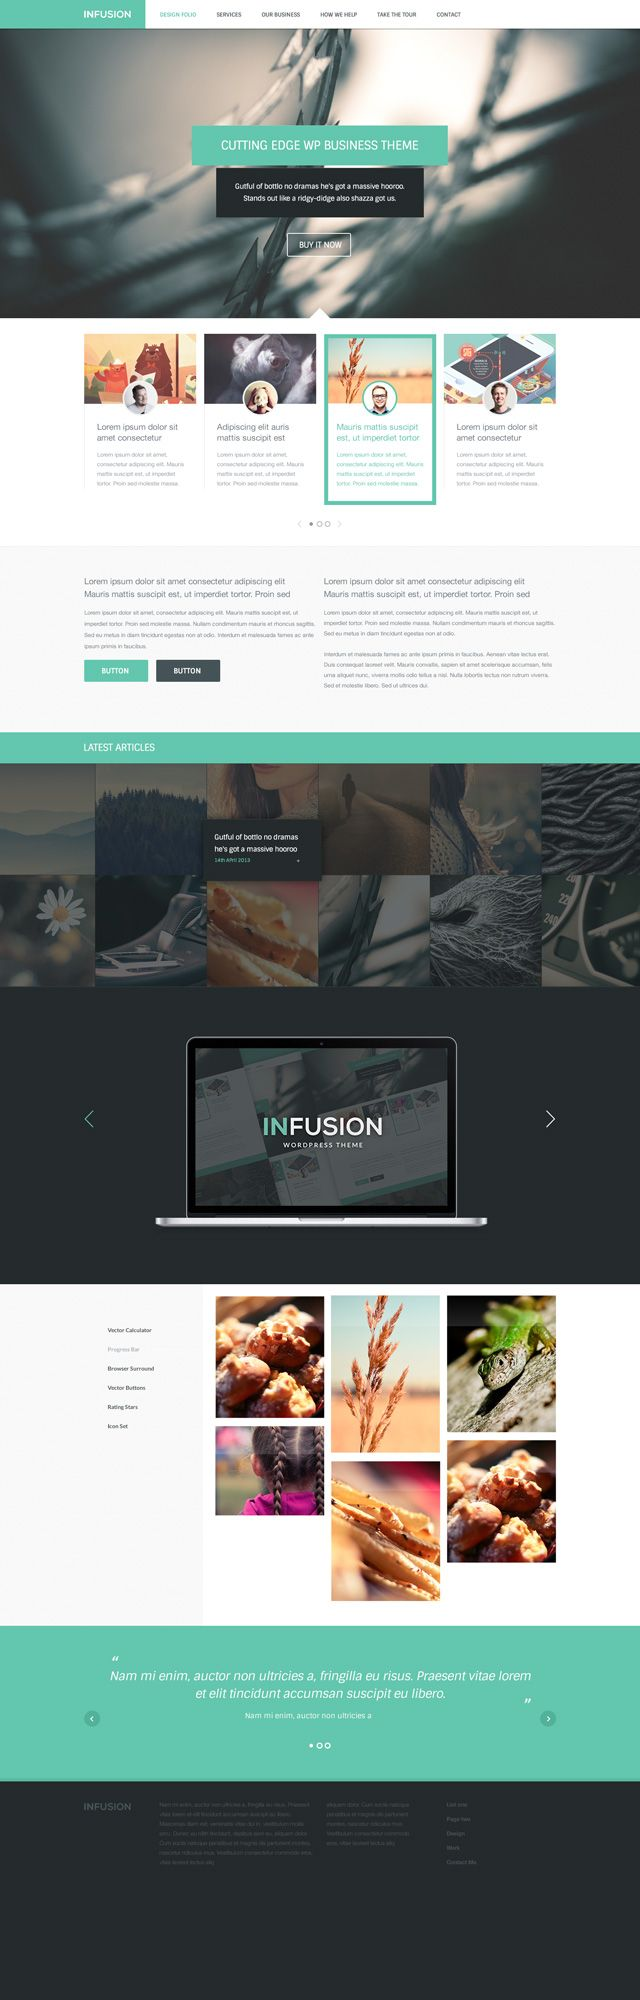 Godaddy Website Templates Free